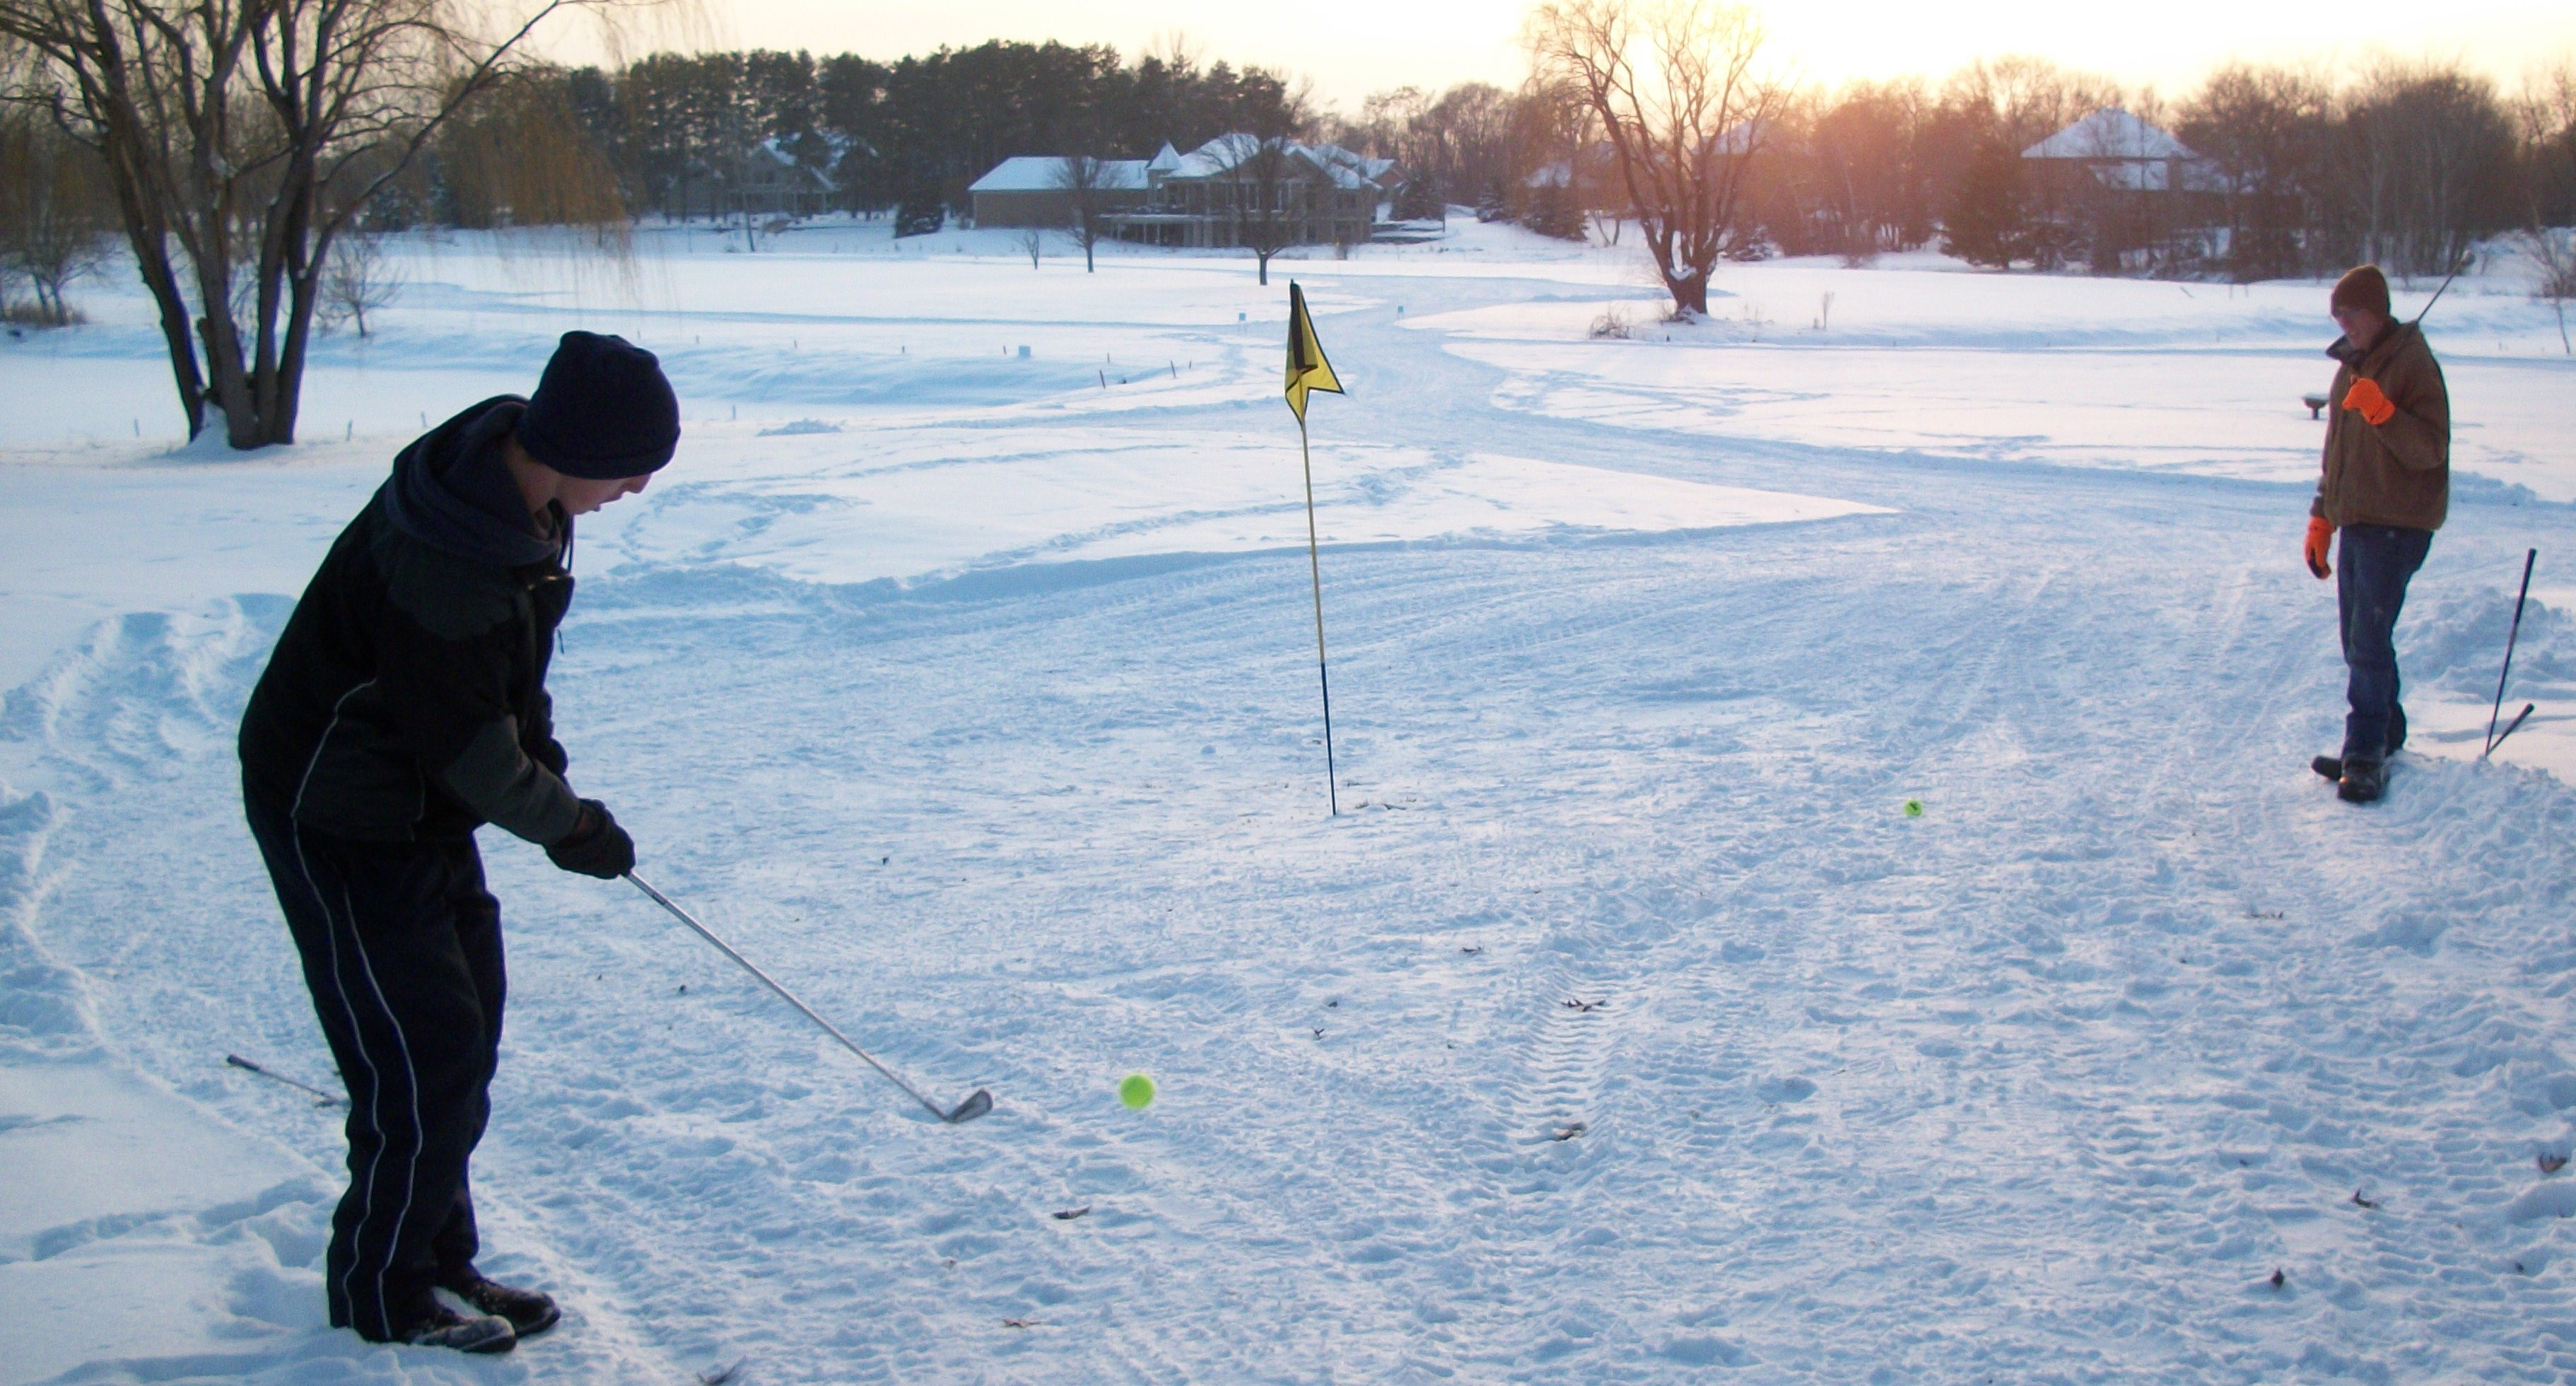 Day 254: Snow Golf at Majestic Oaks